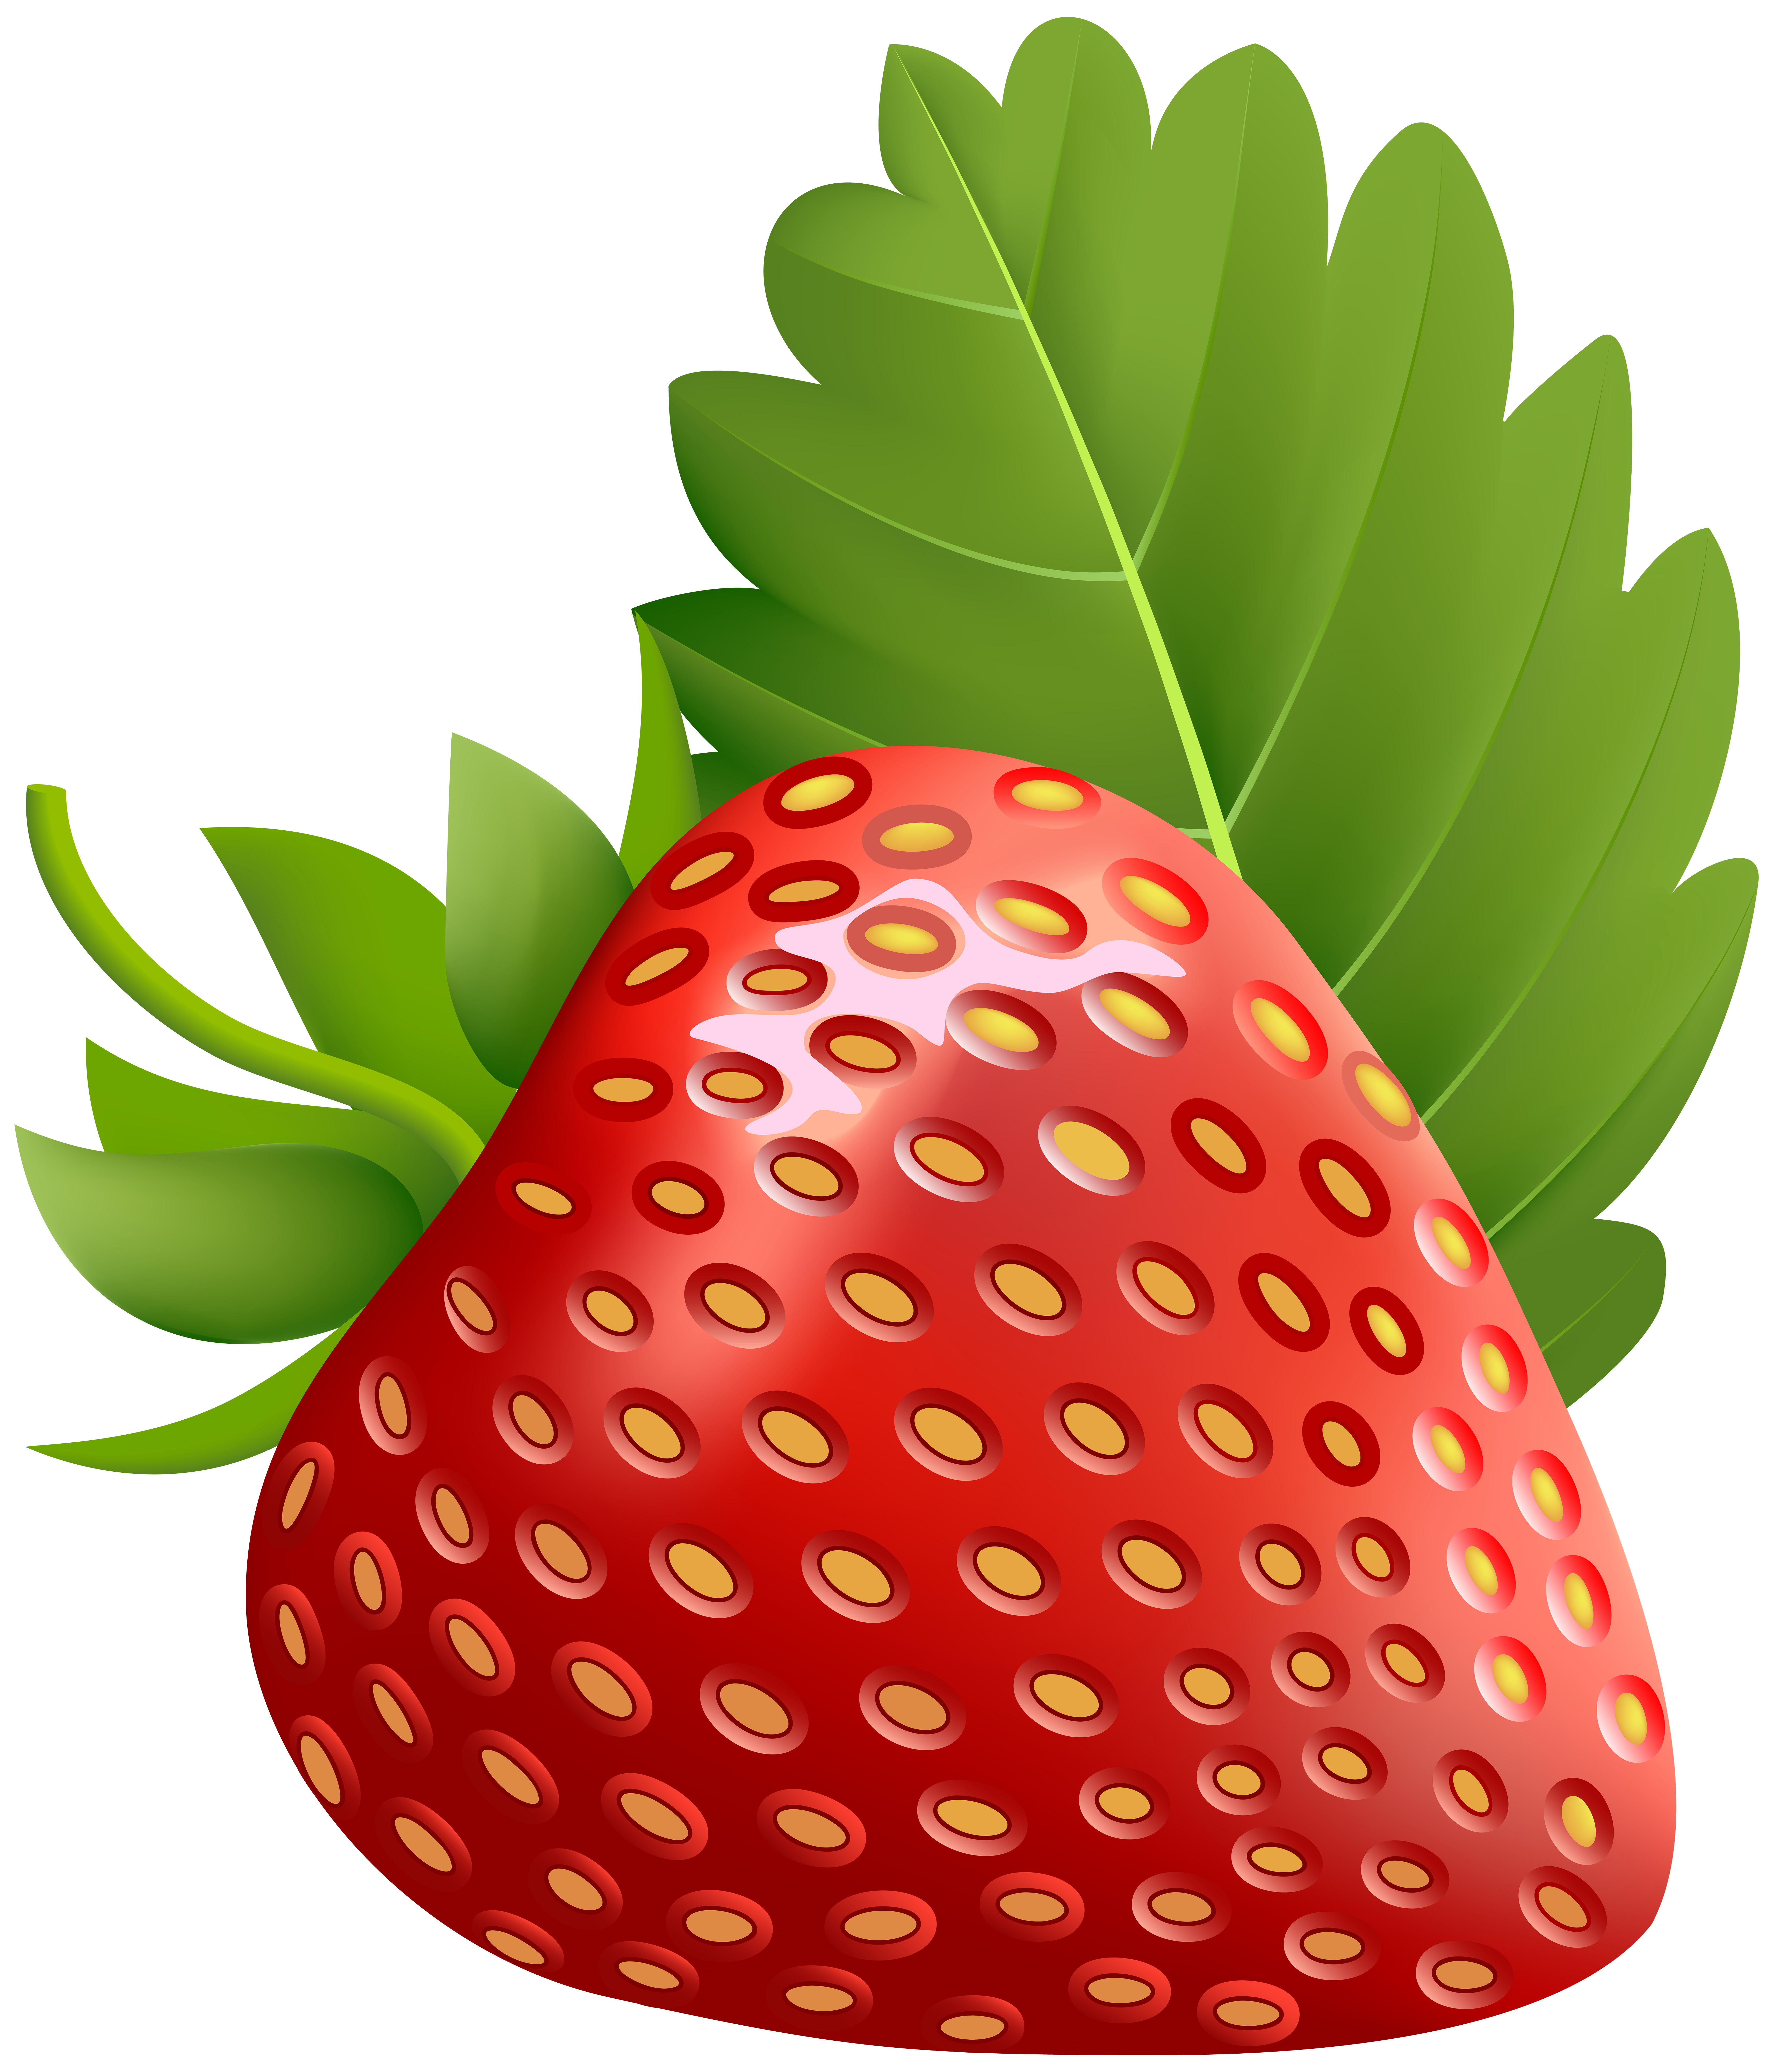 Strawberry flower clipart vector library library Strawberry PNG Transparent Image | Gallery Yopriceville - High ... vector library library